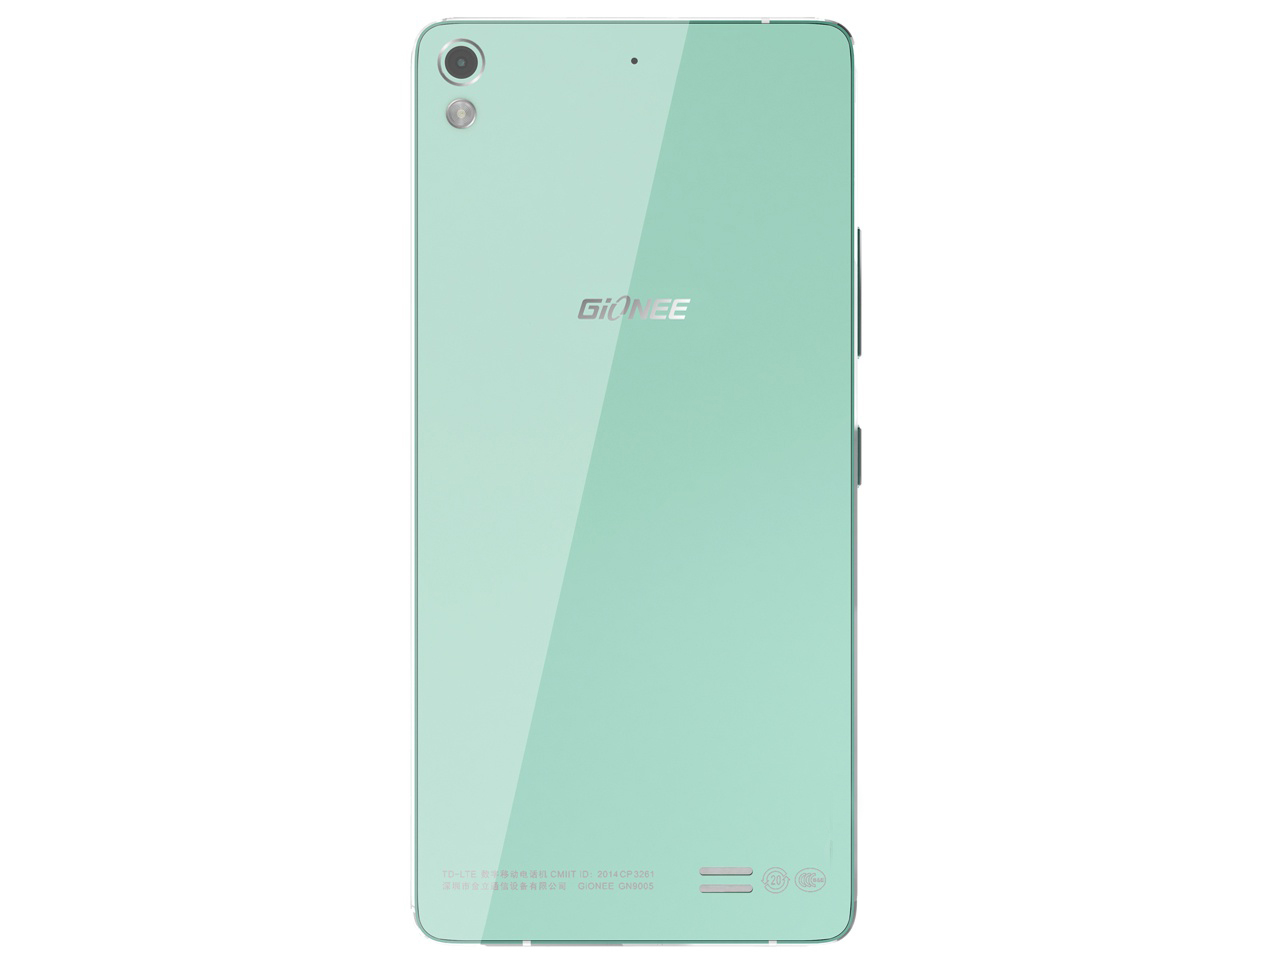 Gionee Elife S5.1 rear view